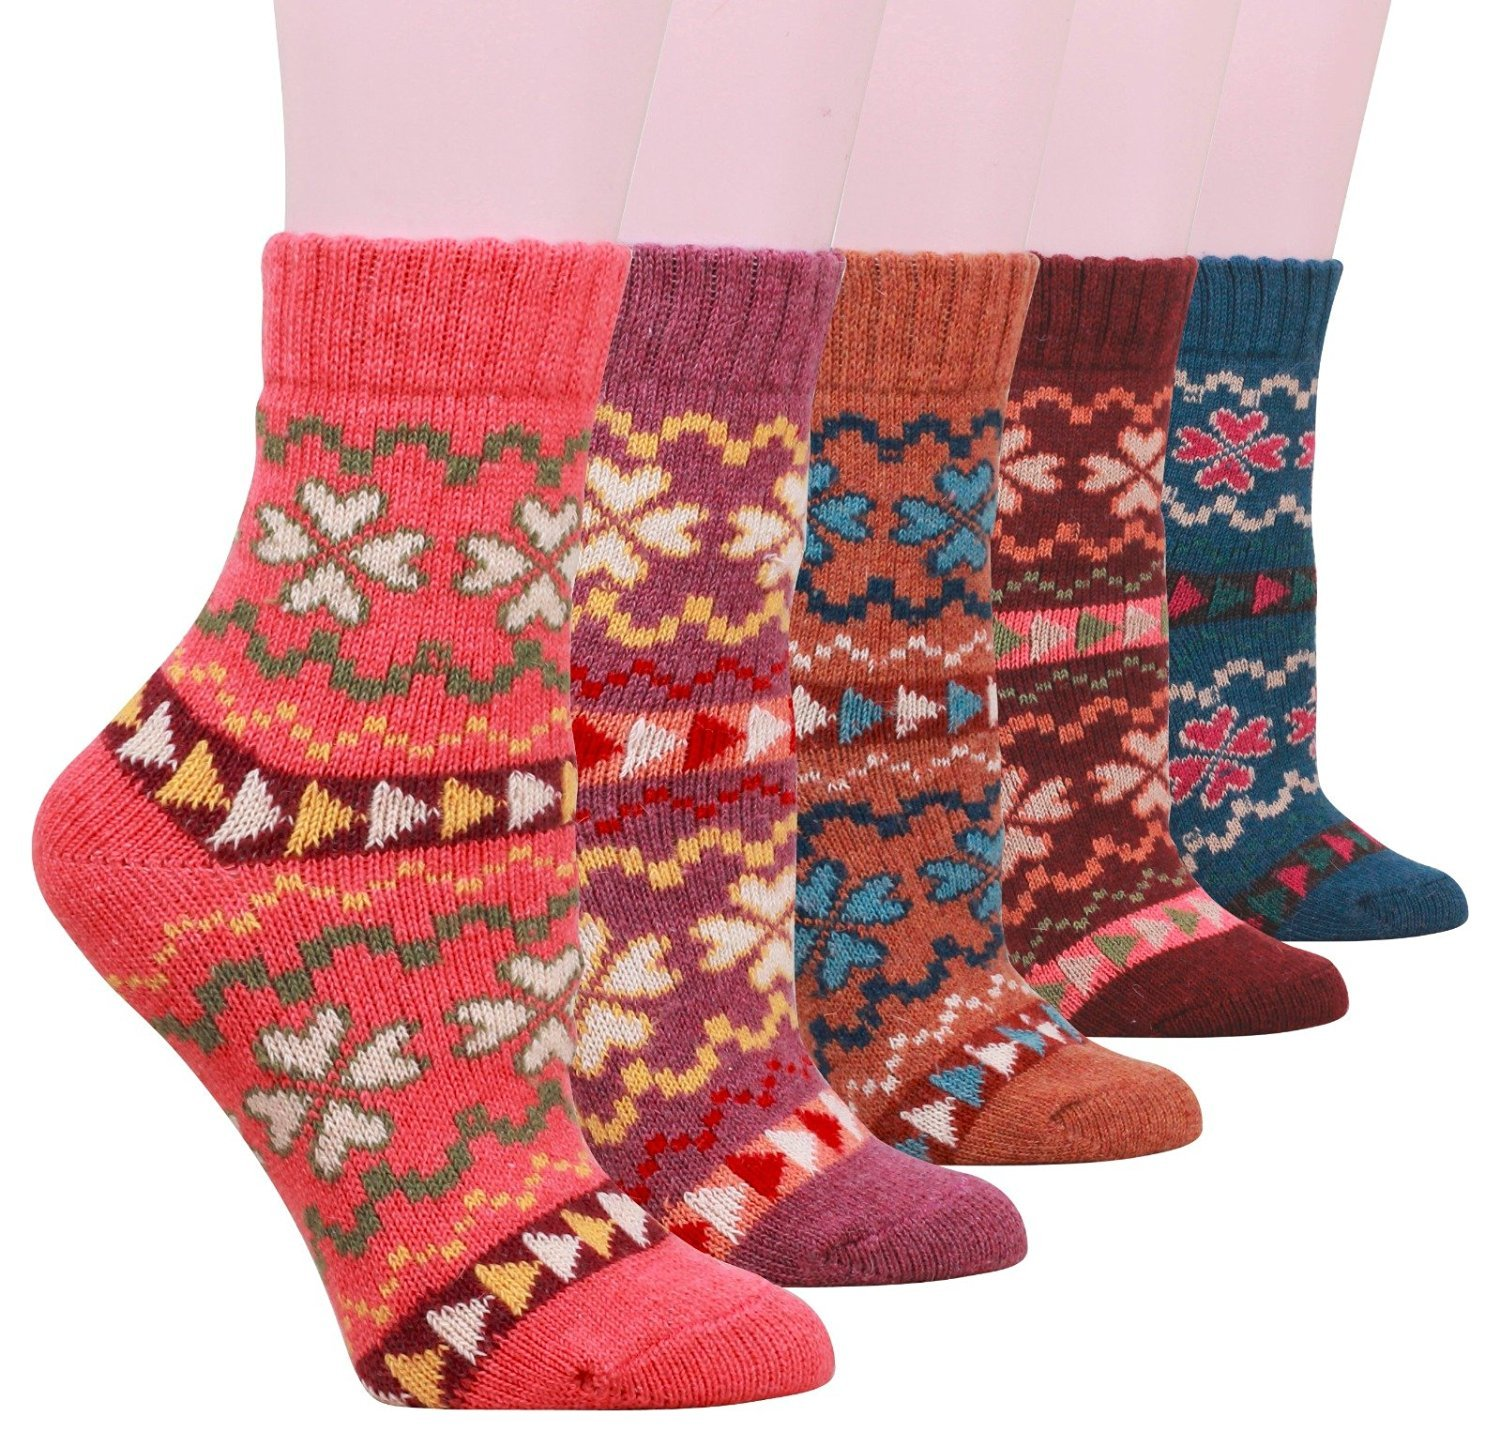 PlayWorld Womens Knit Warm Wool Socks 5 Pairs